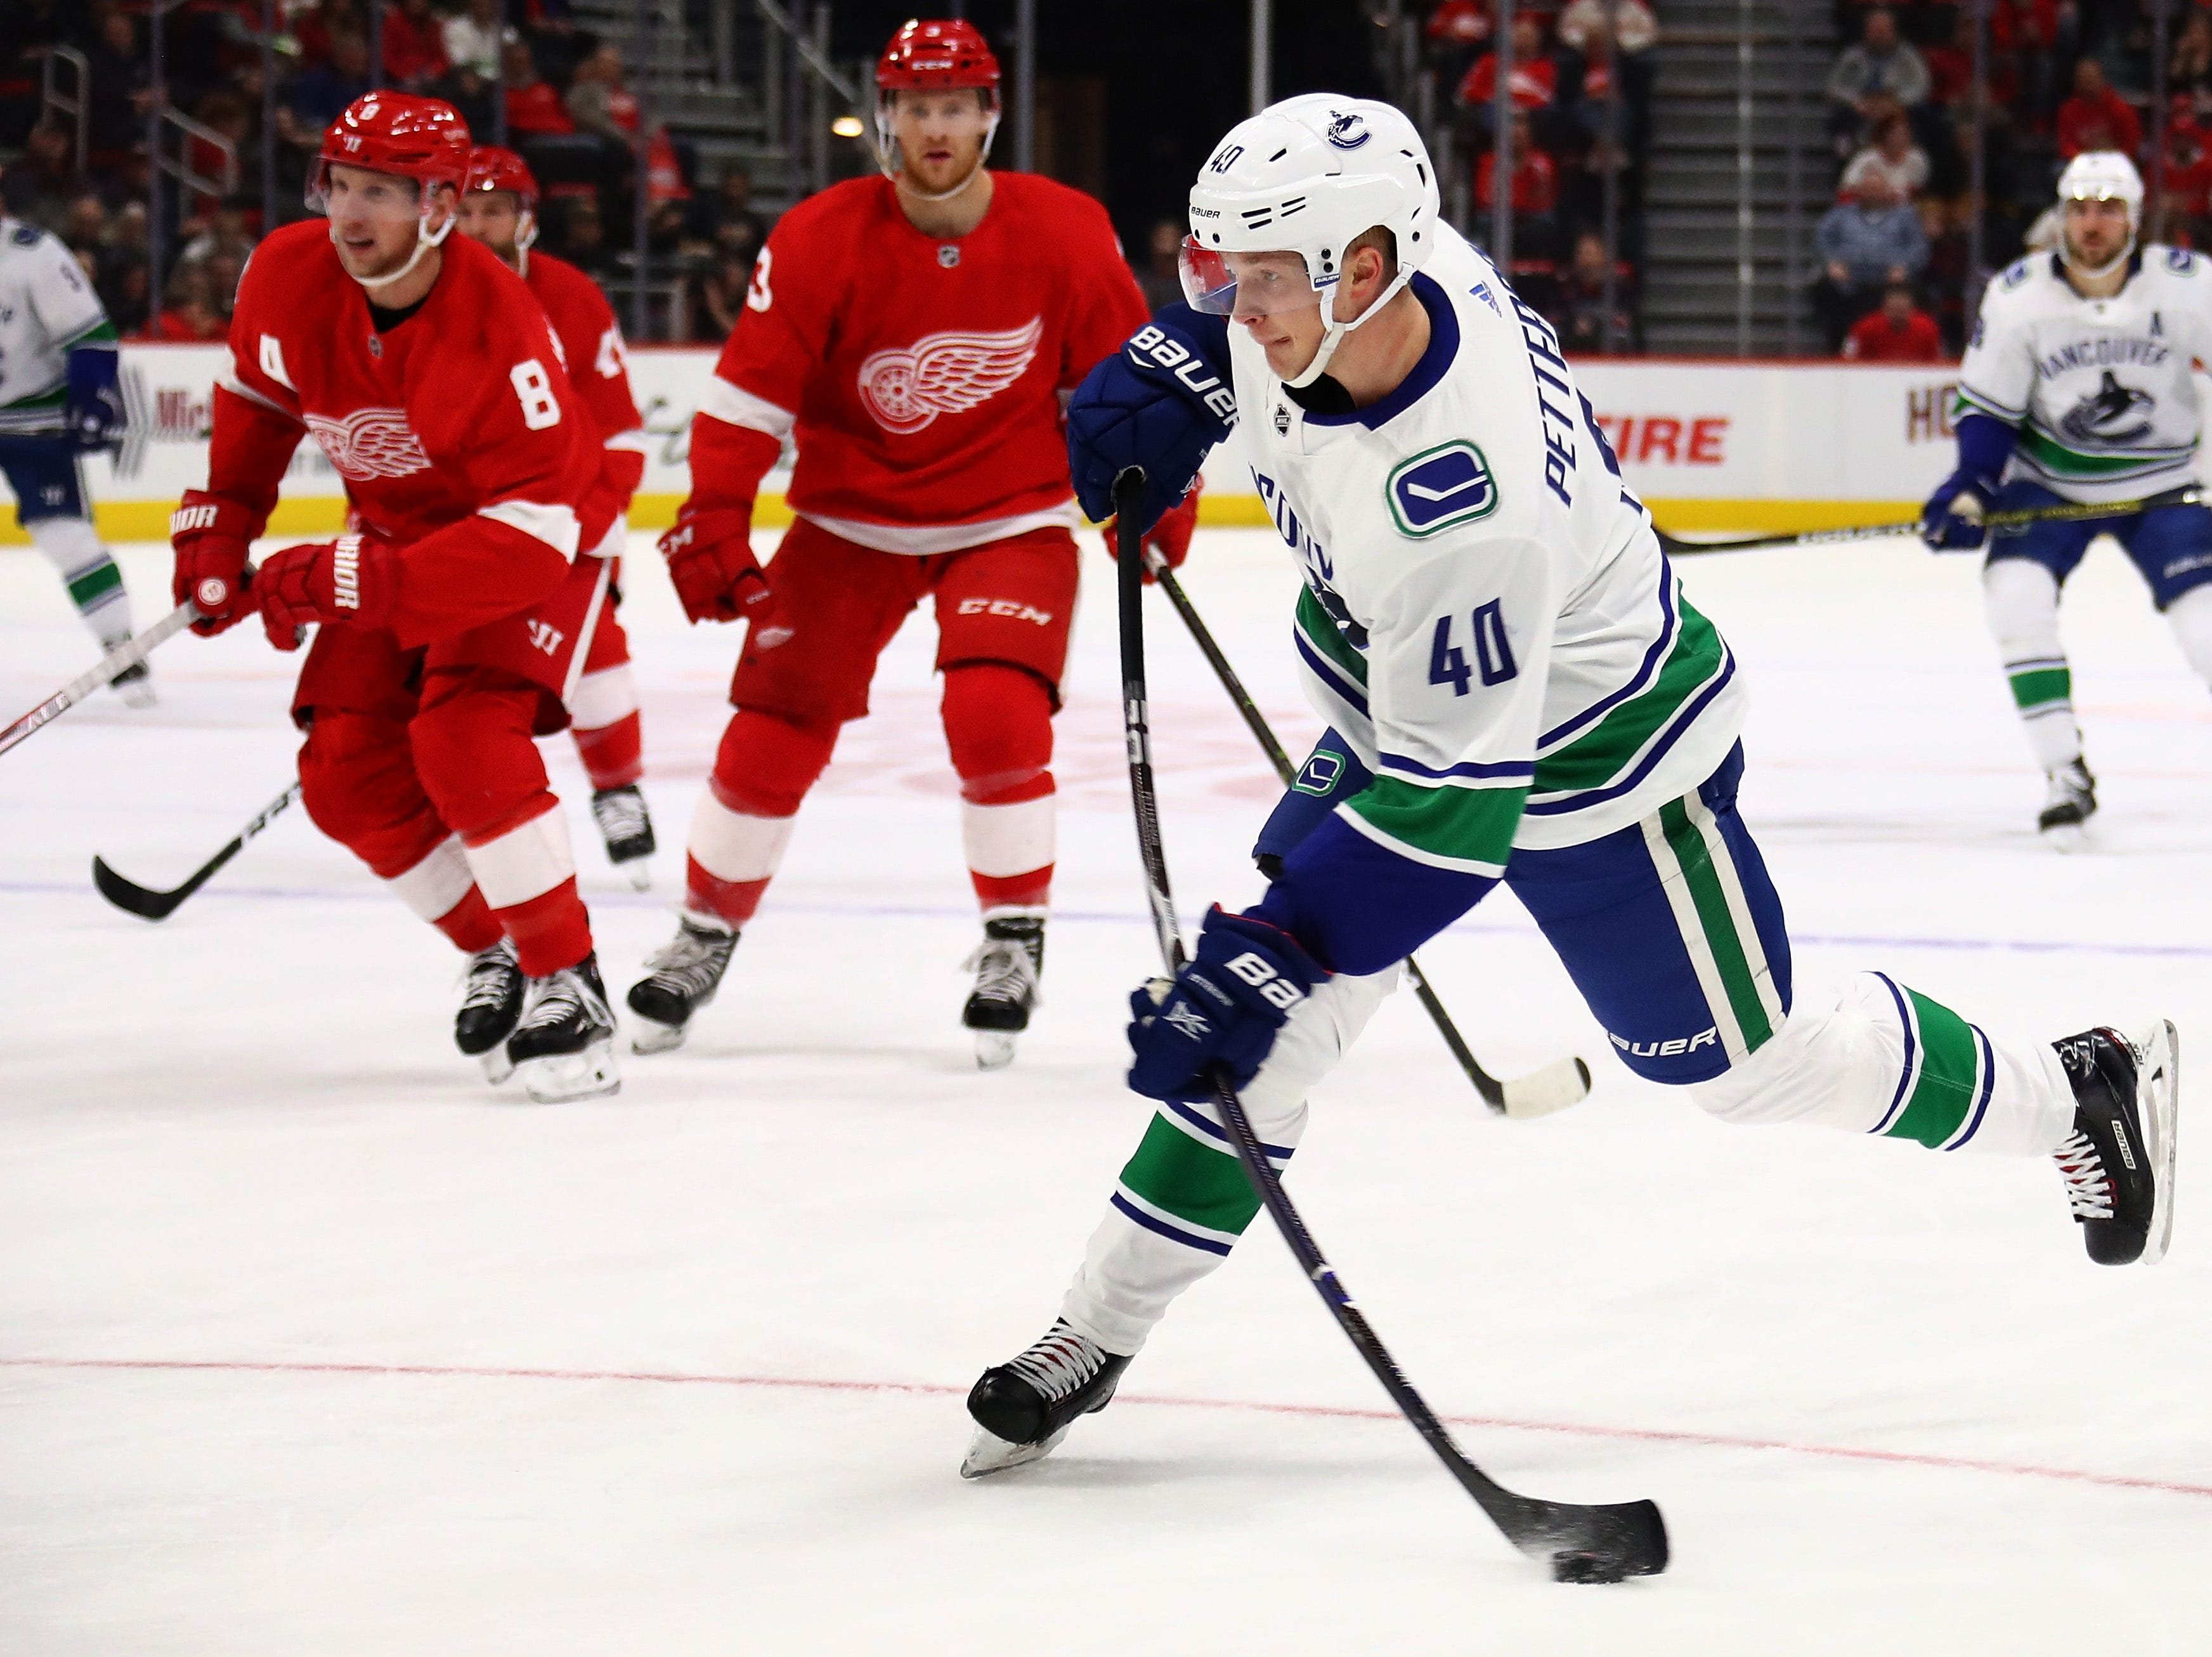 Elias Pettersson (40) of the Vancouver Canucks scores on a shot in the first period while playing the Detroit Red Wings at Little Caesars Arena.